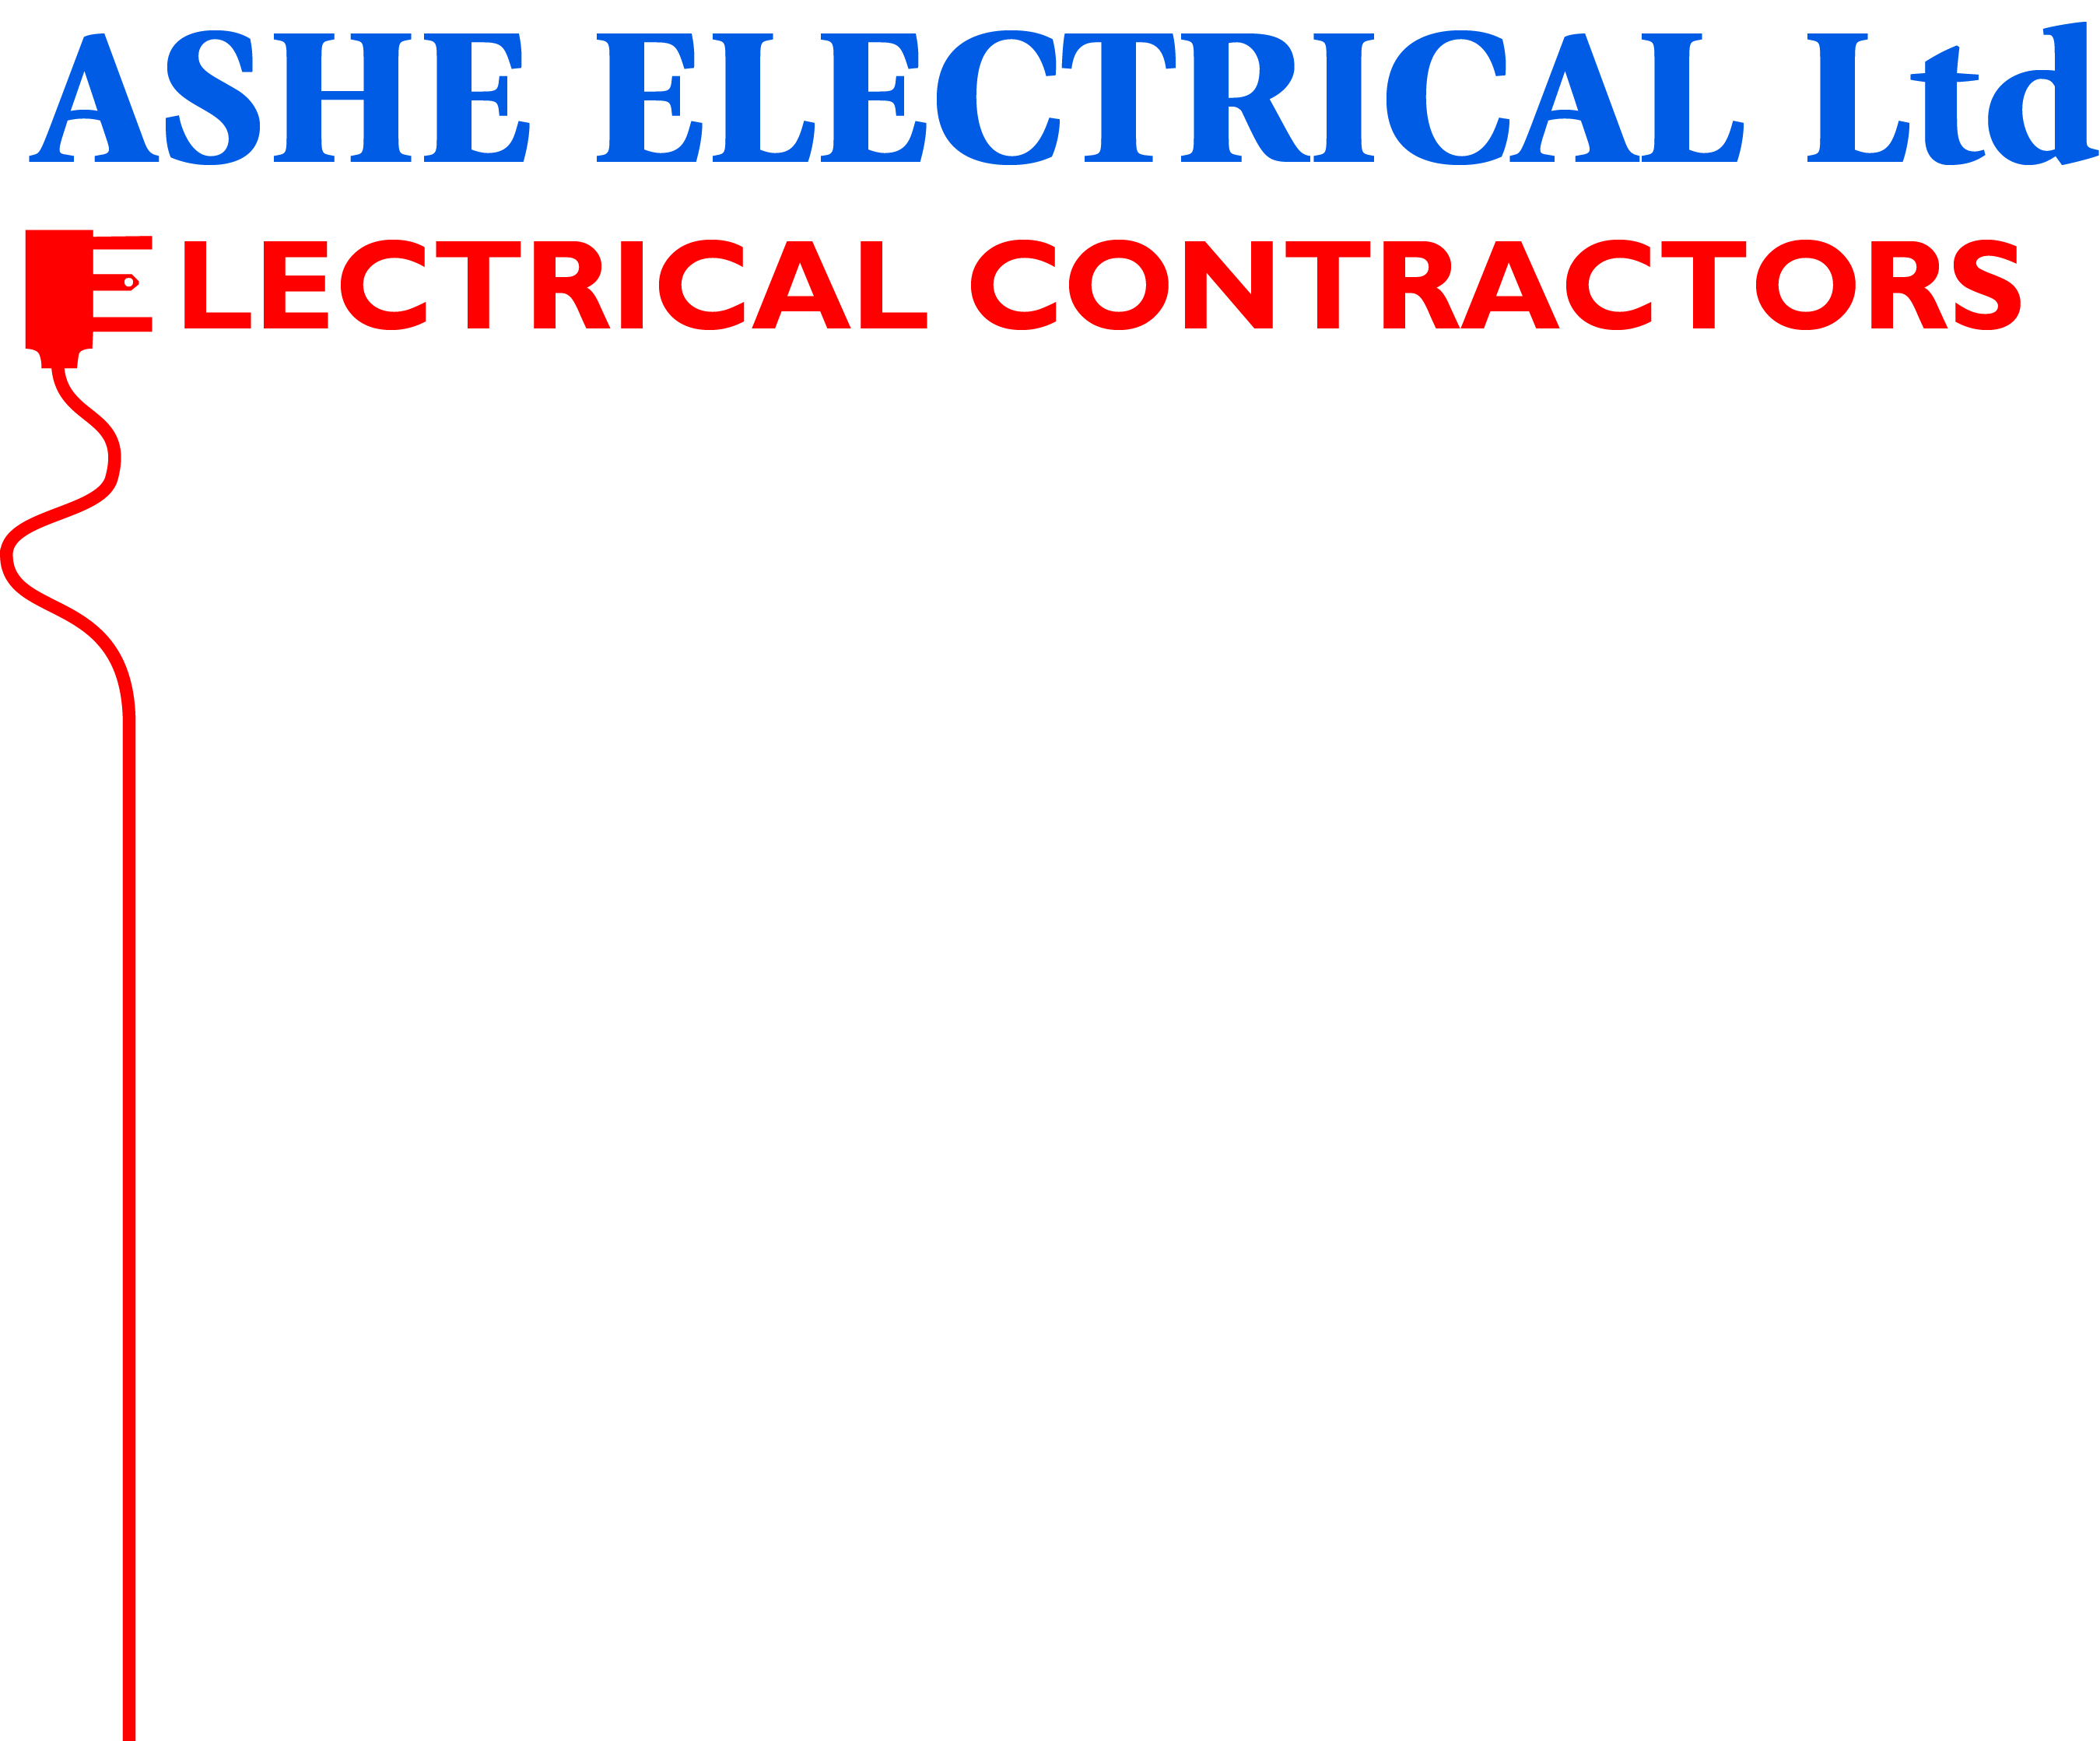 Ashe Electrical Ltd logo